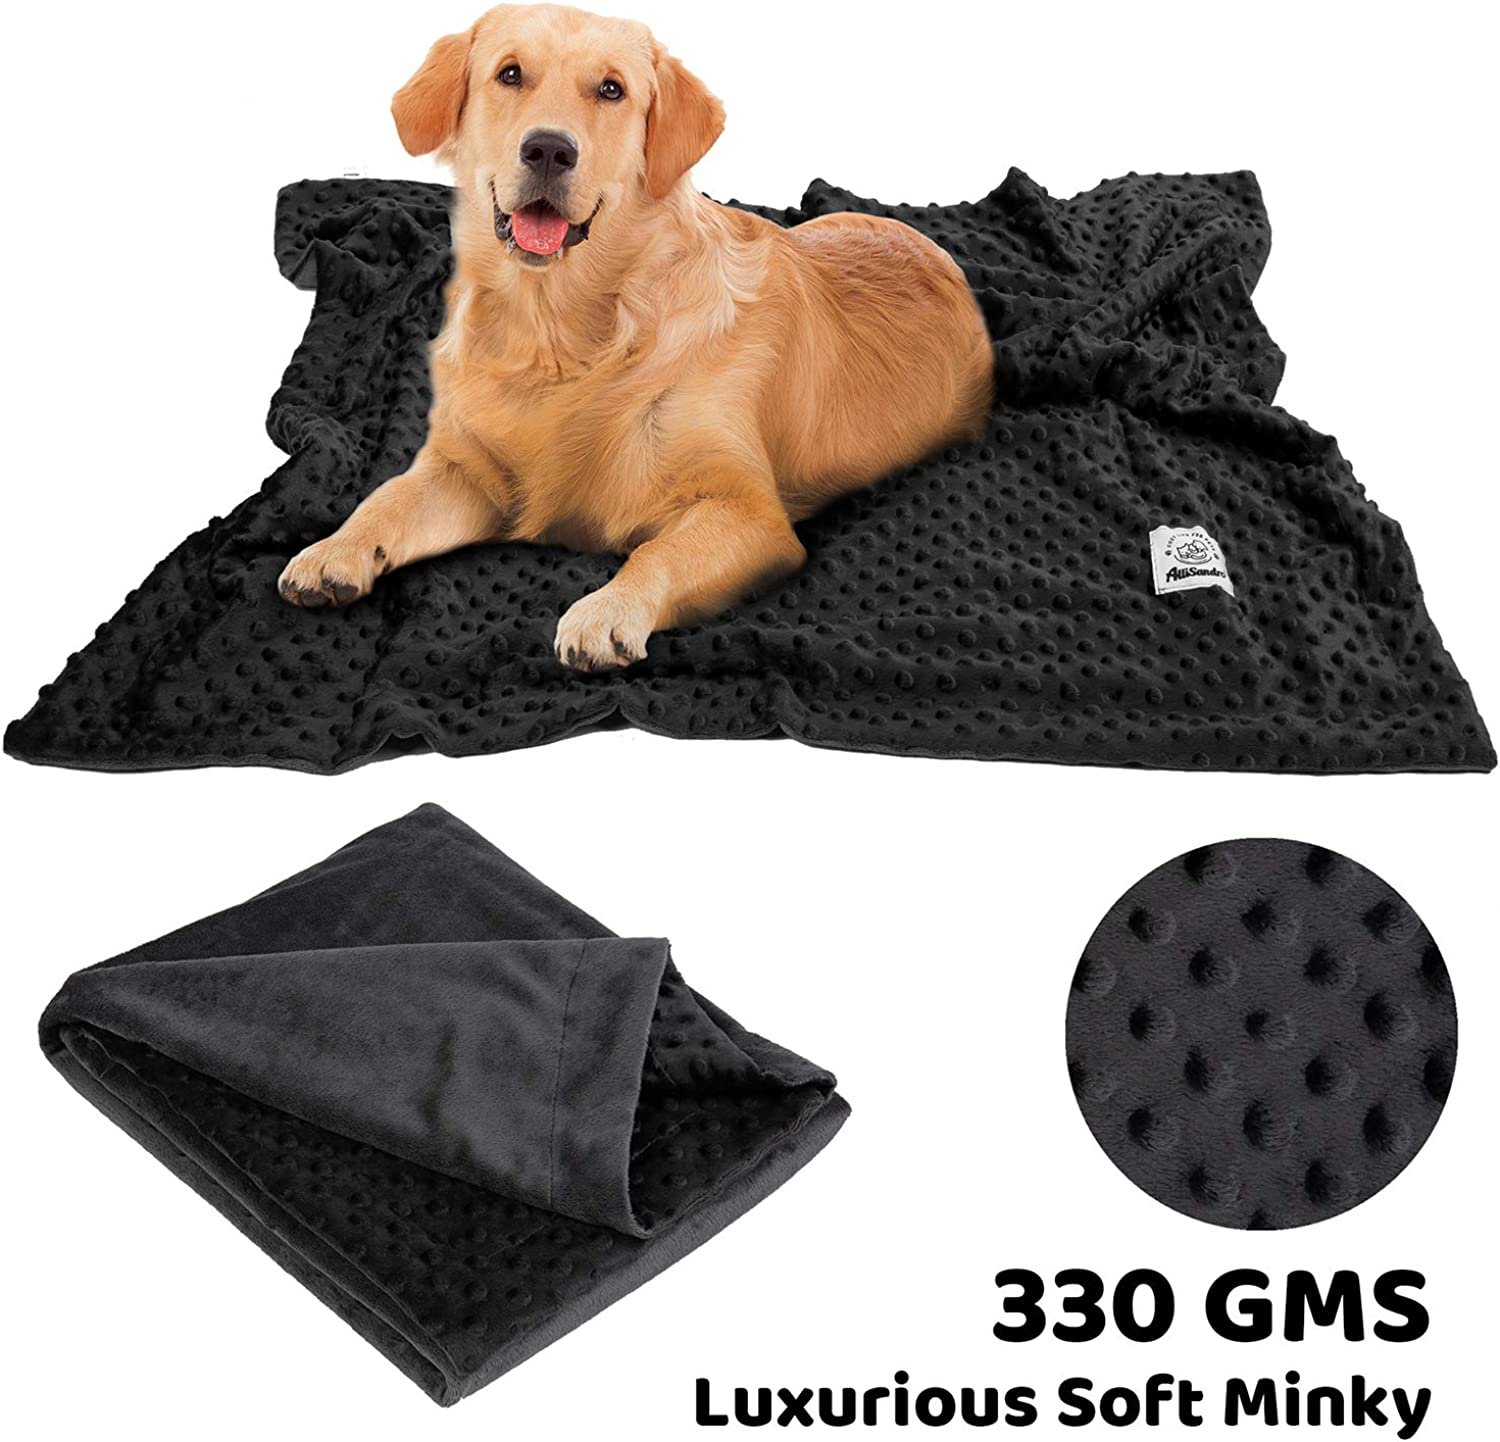 Allisandro Premium Fluffy Dog Blanket Soft and Warm Fleece Blanket for Pet and Throw Cute Paw Print Puppy Cat Blanket Durable and Washable (Black Minky)